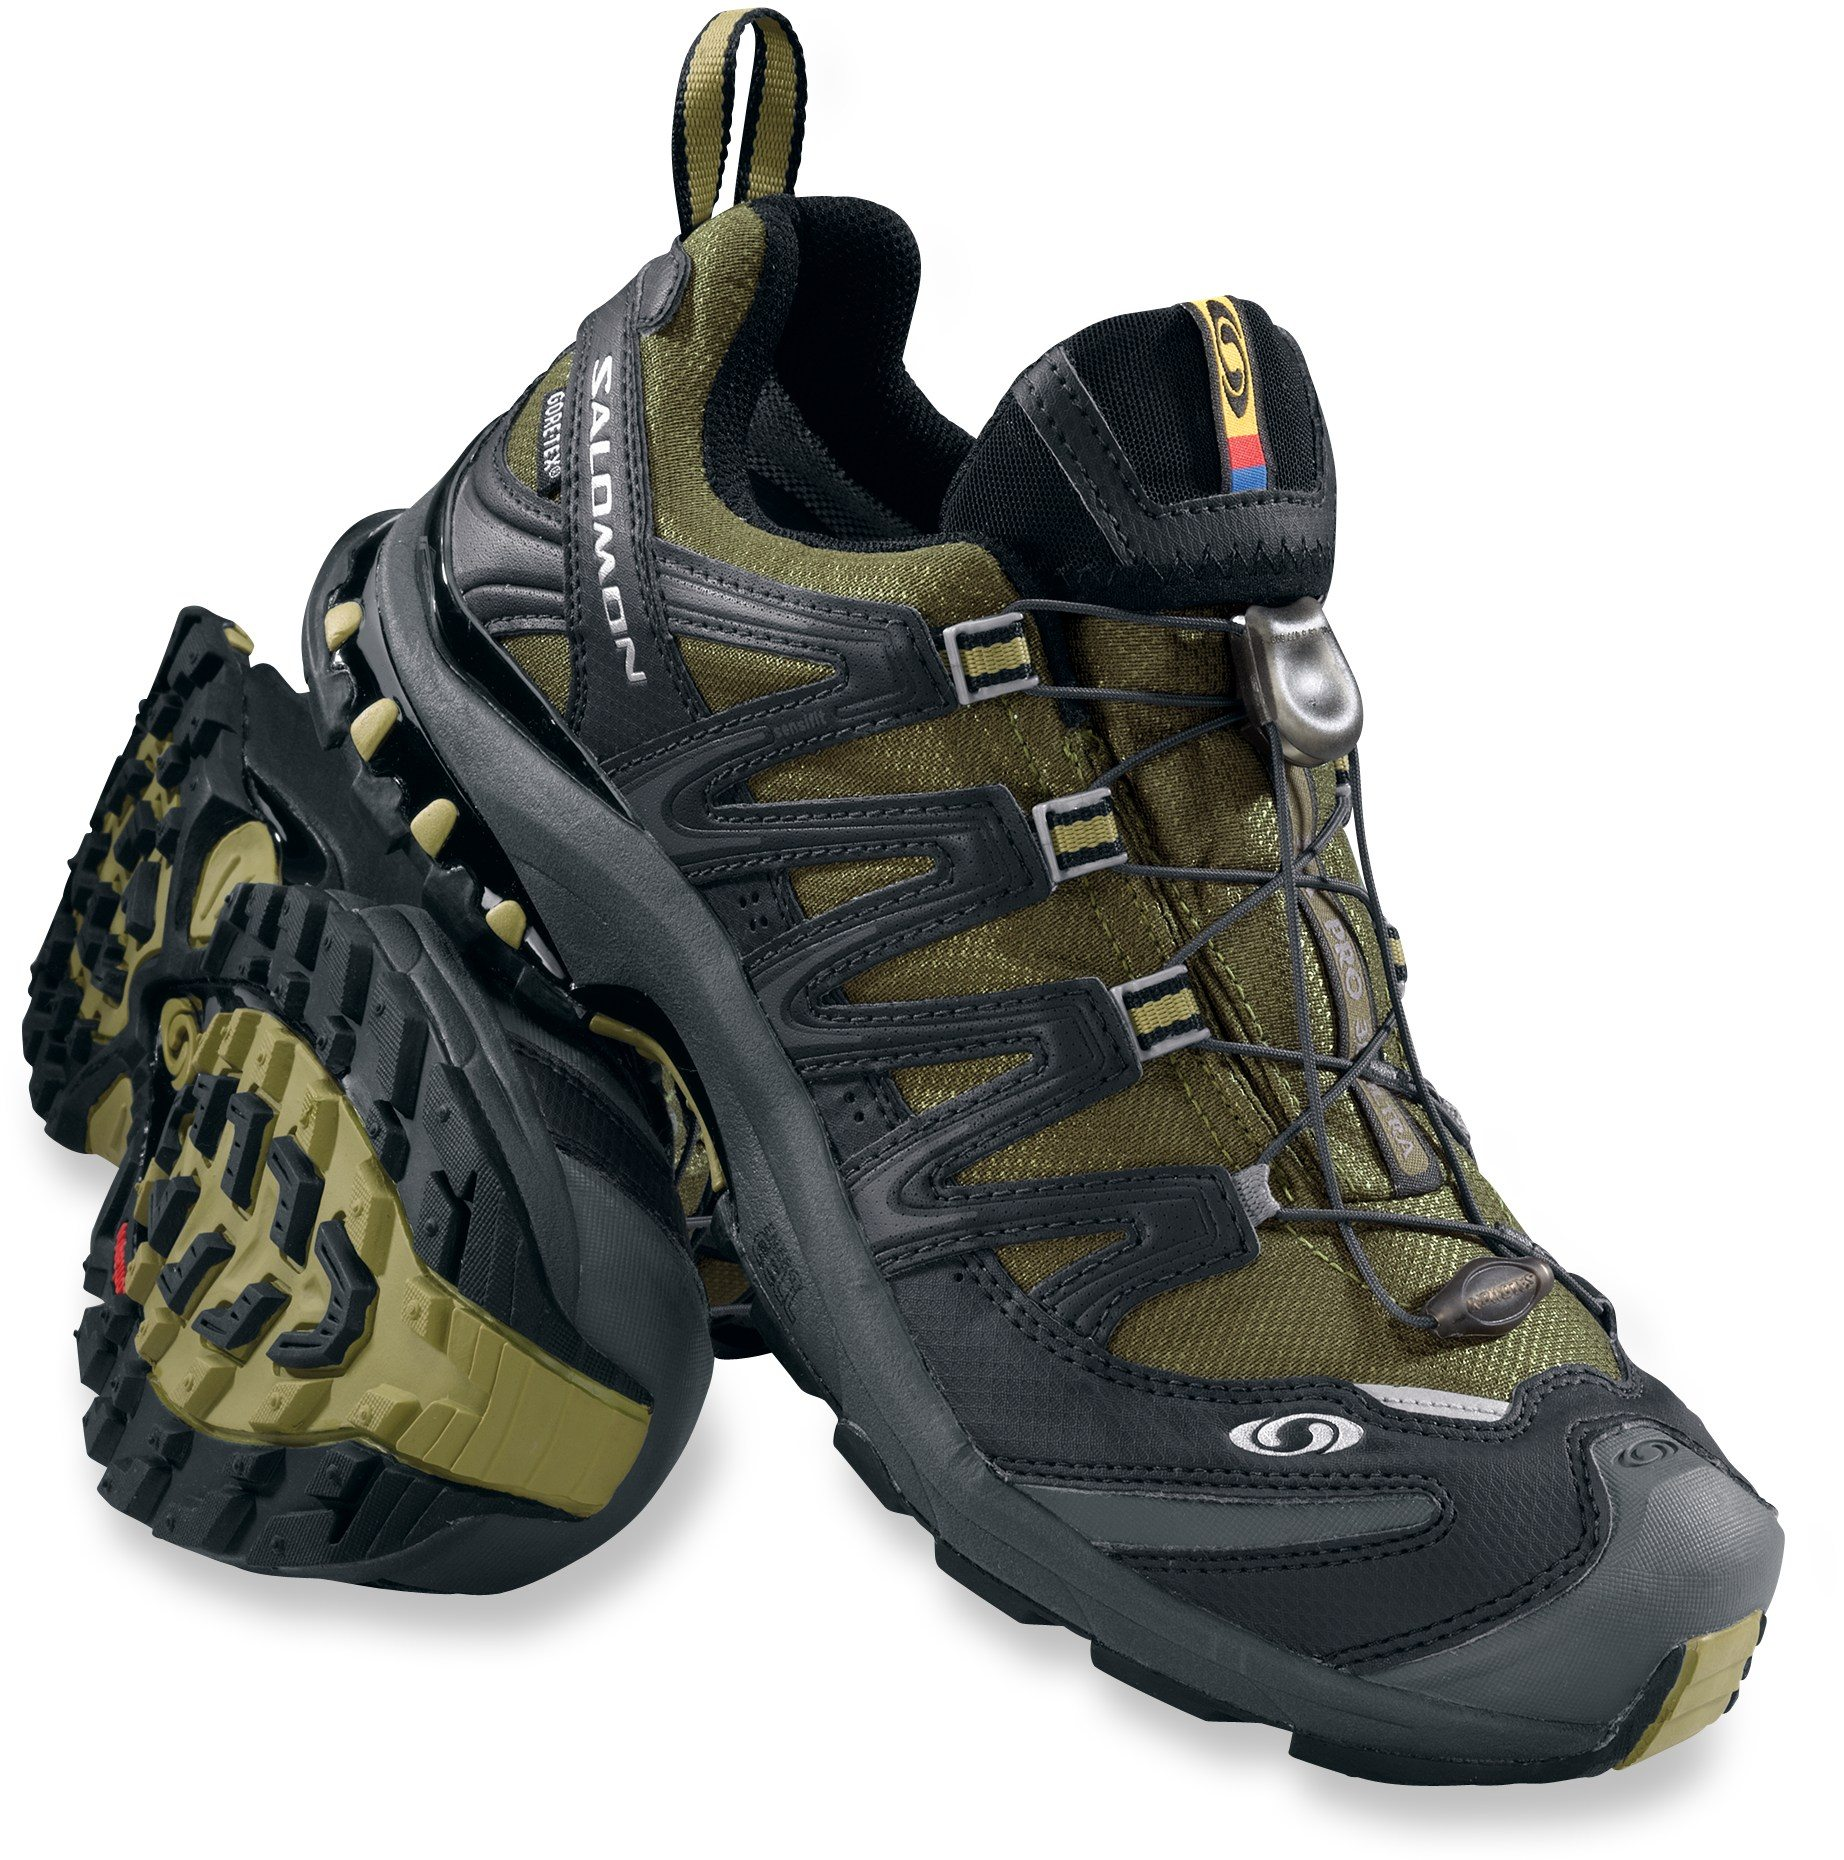 6dfa190809900 Salomon climbs a bit to a higher price point. The first shoe I found was  the Men s XA Pro 3D Ultra 2 GTX Trail Running Shoe. I t was also  waterproof